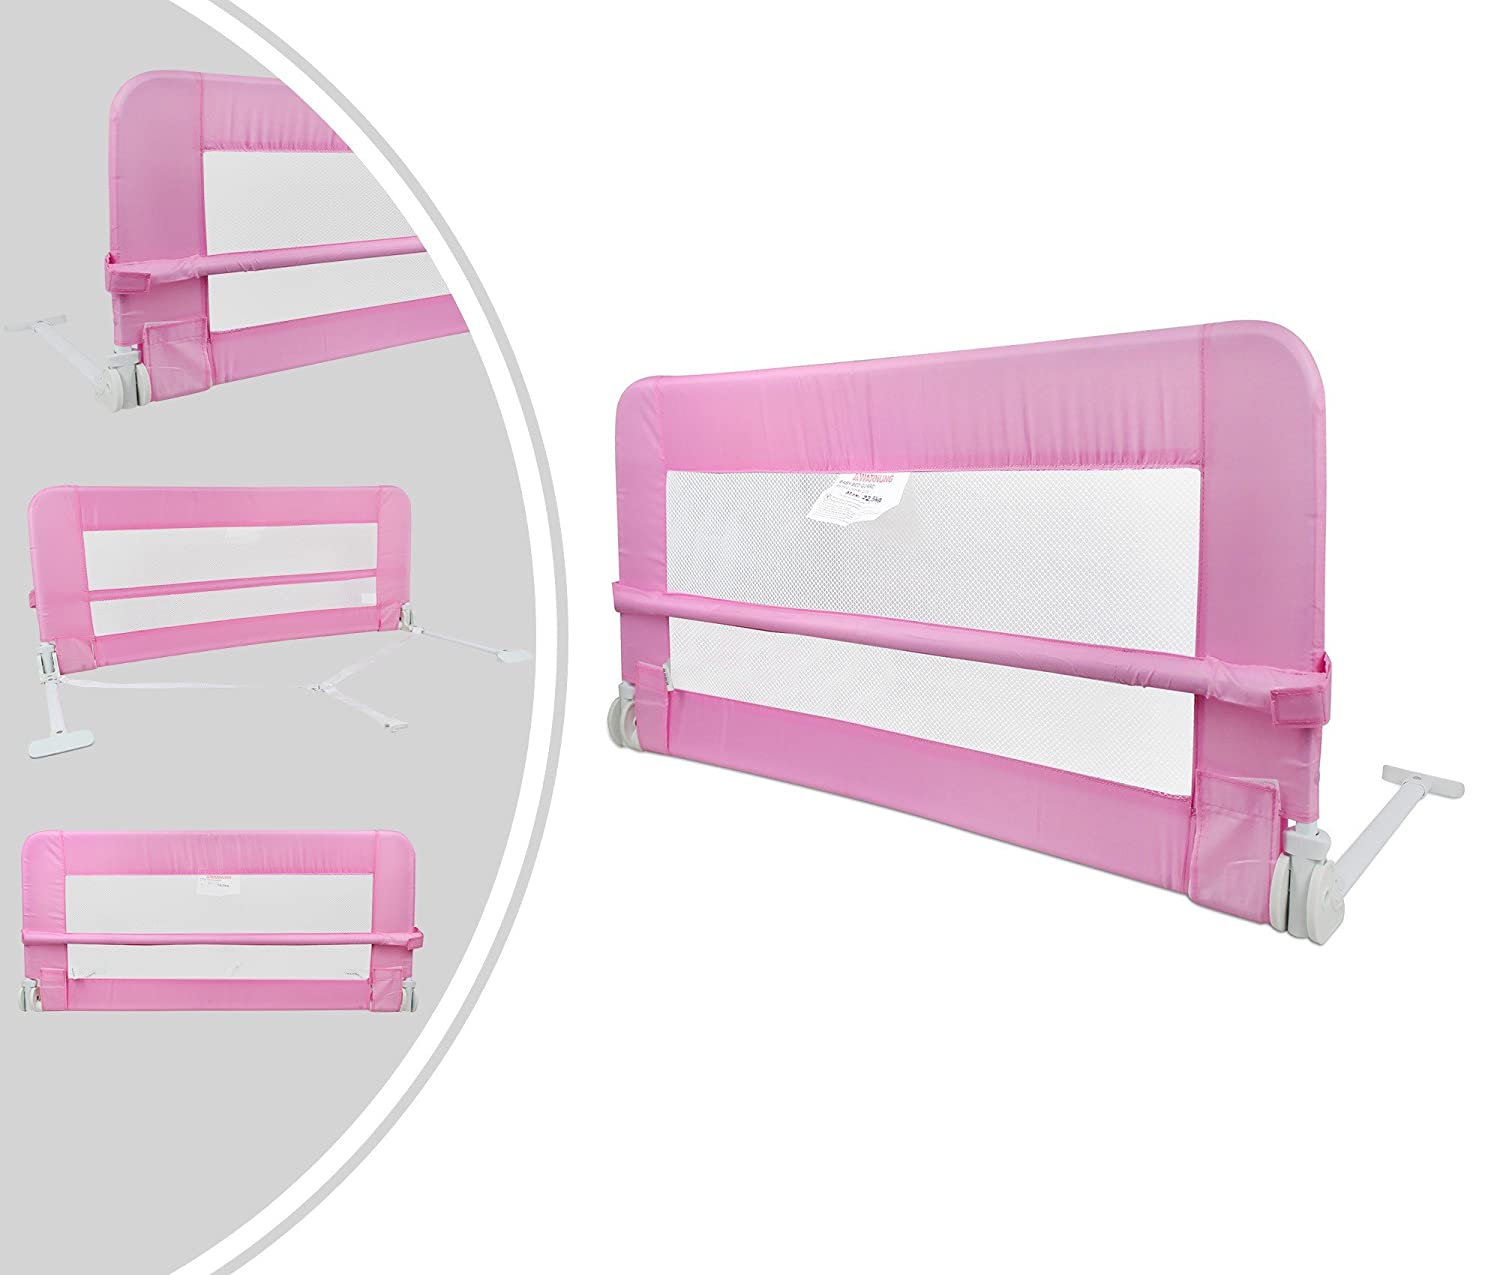 Leogreen - Baby and Toddler Safety Bed Rail, Foldable Baby Bed Gate, 3.9 feet, Pink, Material: Nylon fabric